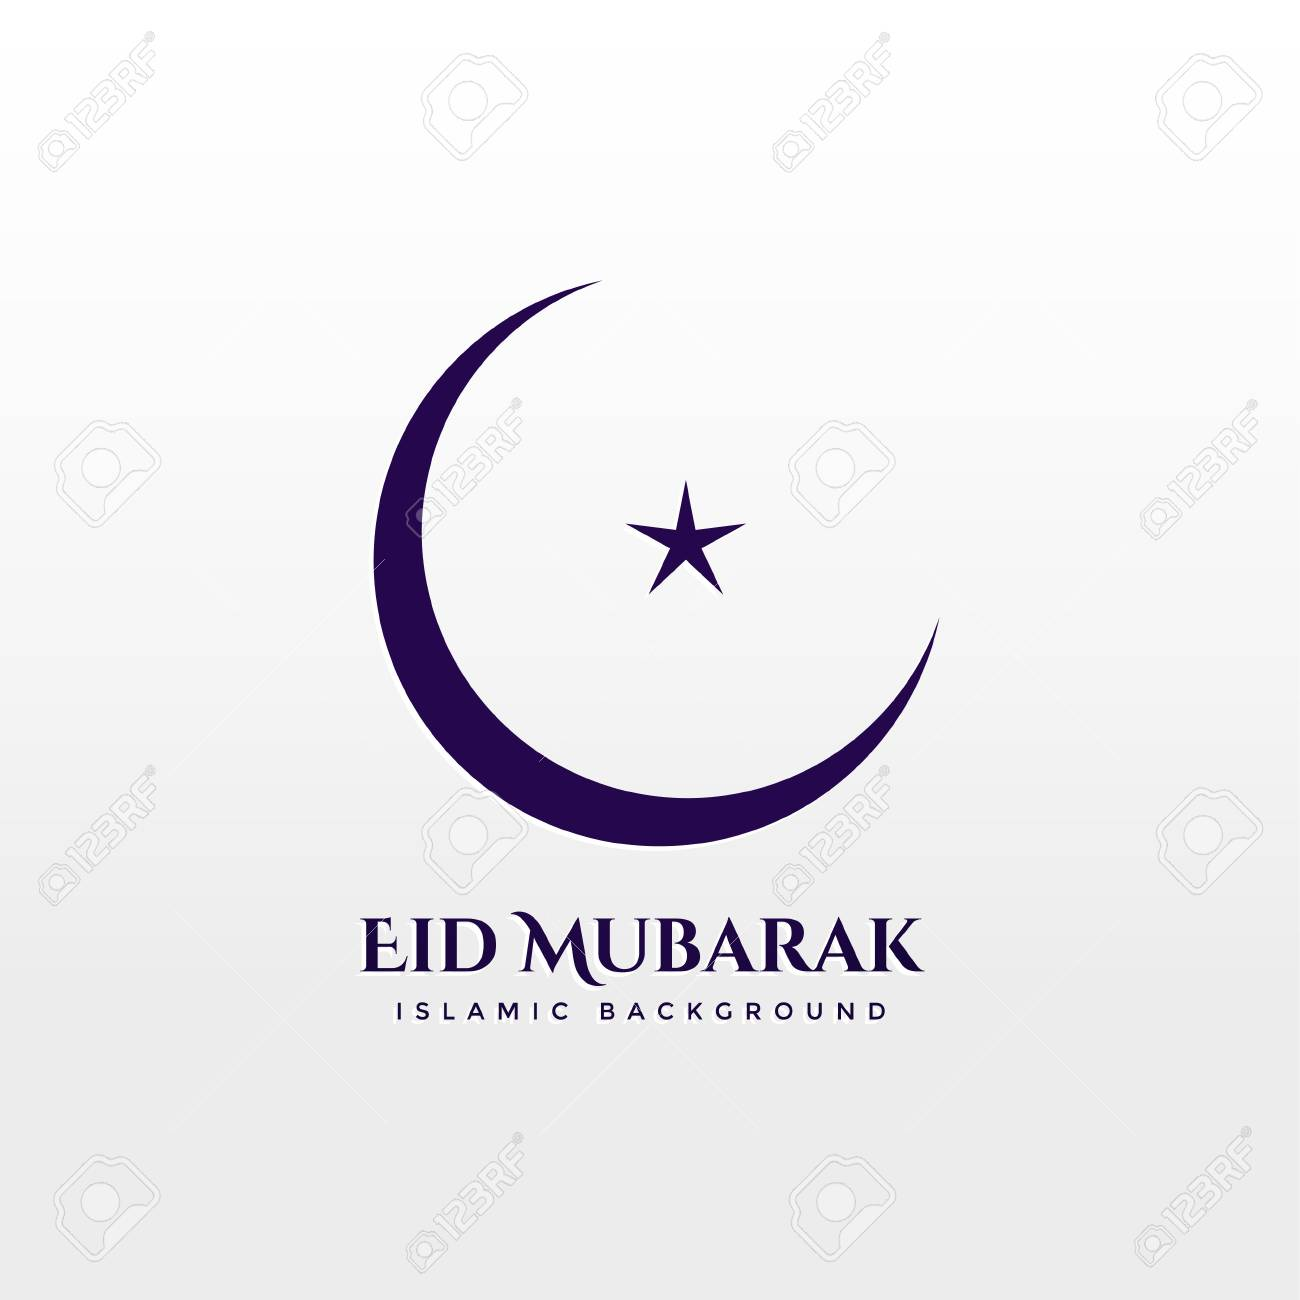 crescent moon with star on white background eid mubarak royalty free cliparts vectors and stock illustration image 99376251 crescent moon with star on white background eid mubarak